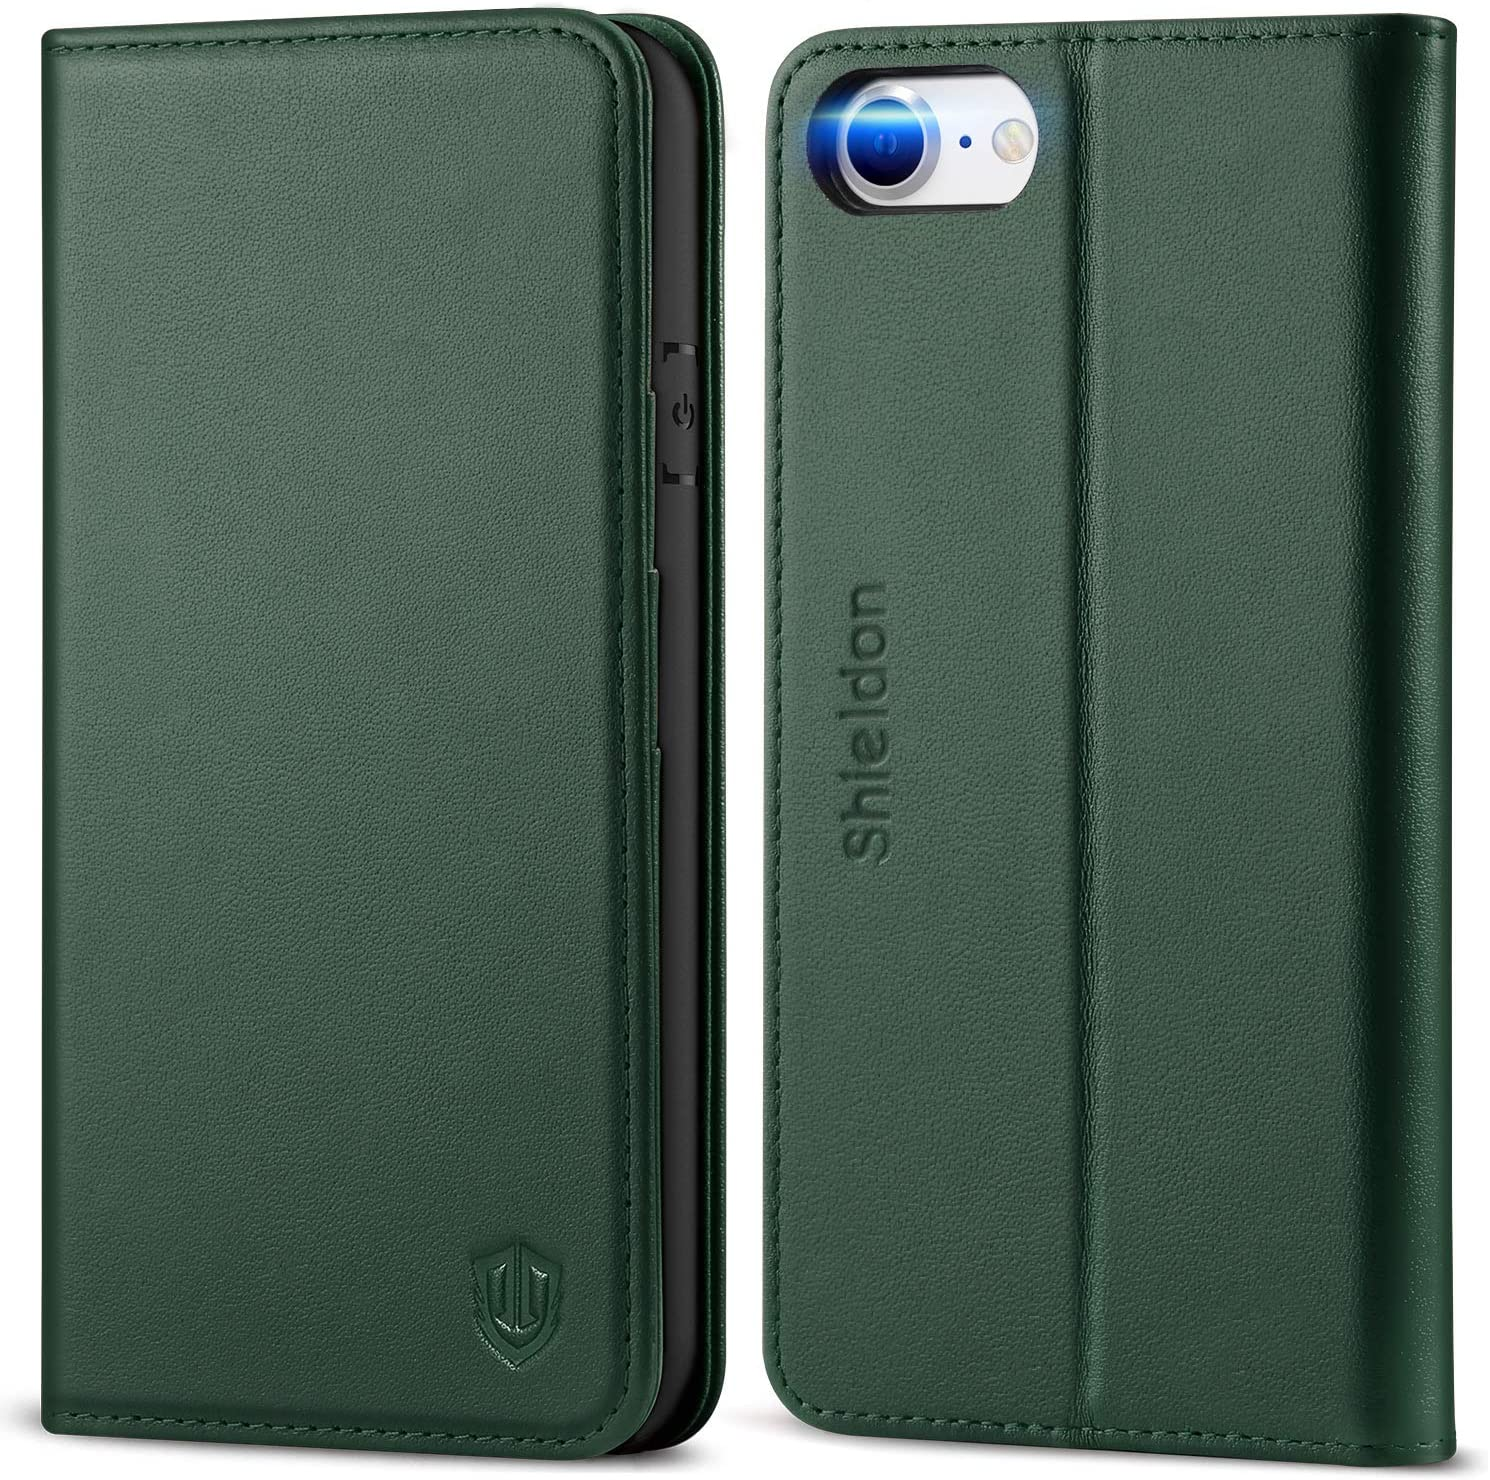 SHIELDON iPhone SE 2020 Case, iPhone 8 Wallet Case, Genuine Leather iPhone 7 Flip Magnetic Cover Card Slots Carry-All with Kickstand TPU Shockproof Case Compatible with iPhone SE2/8/7 - Midnight Green